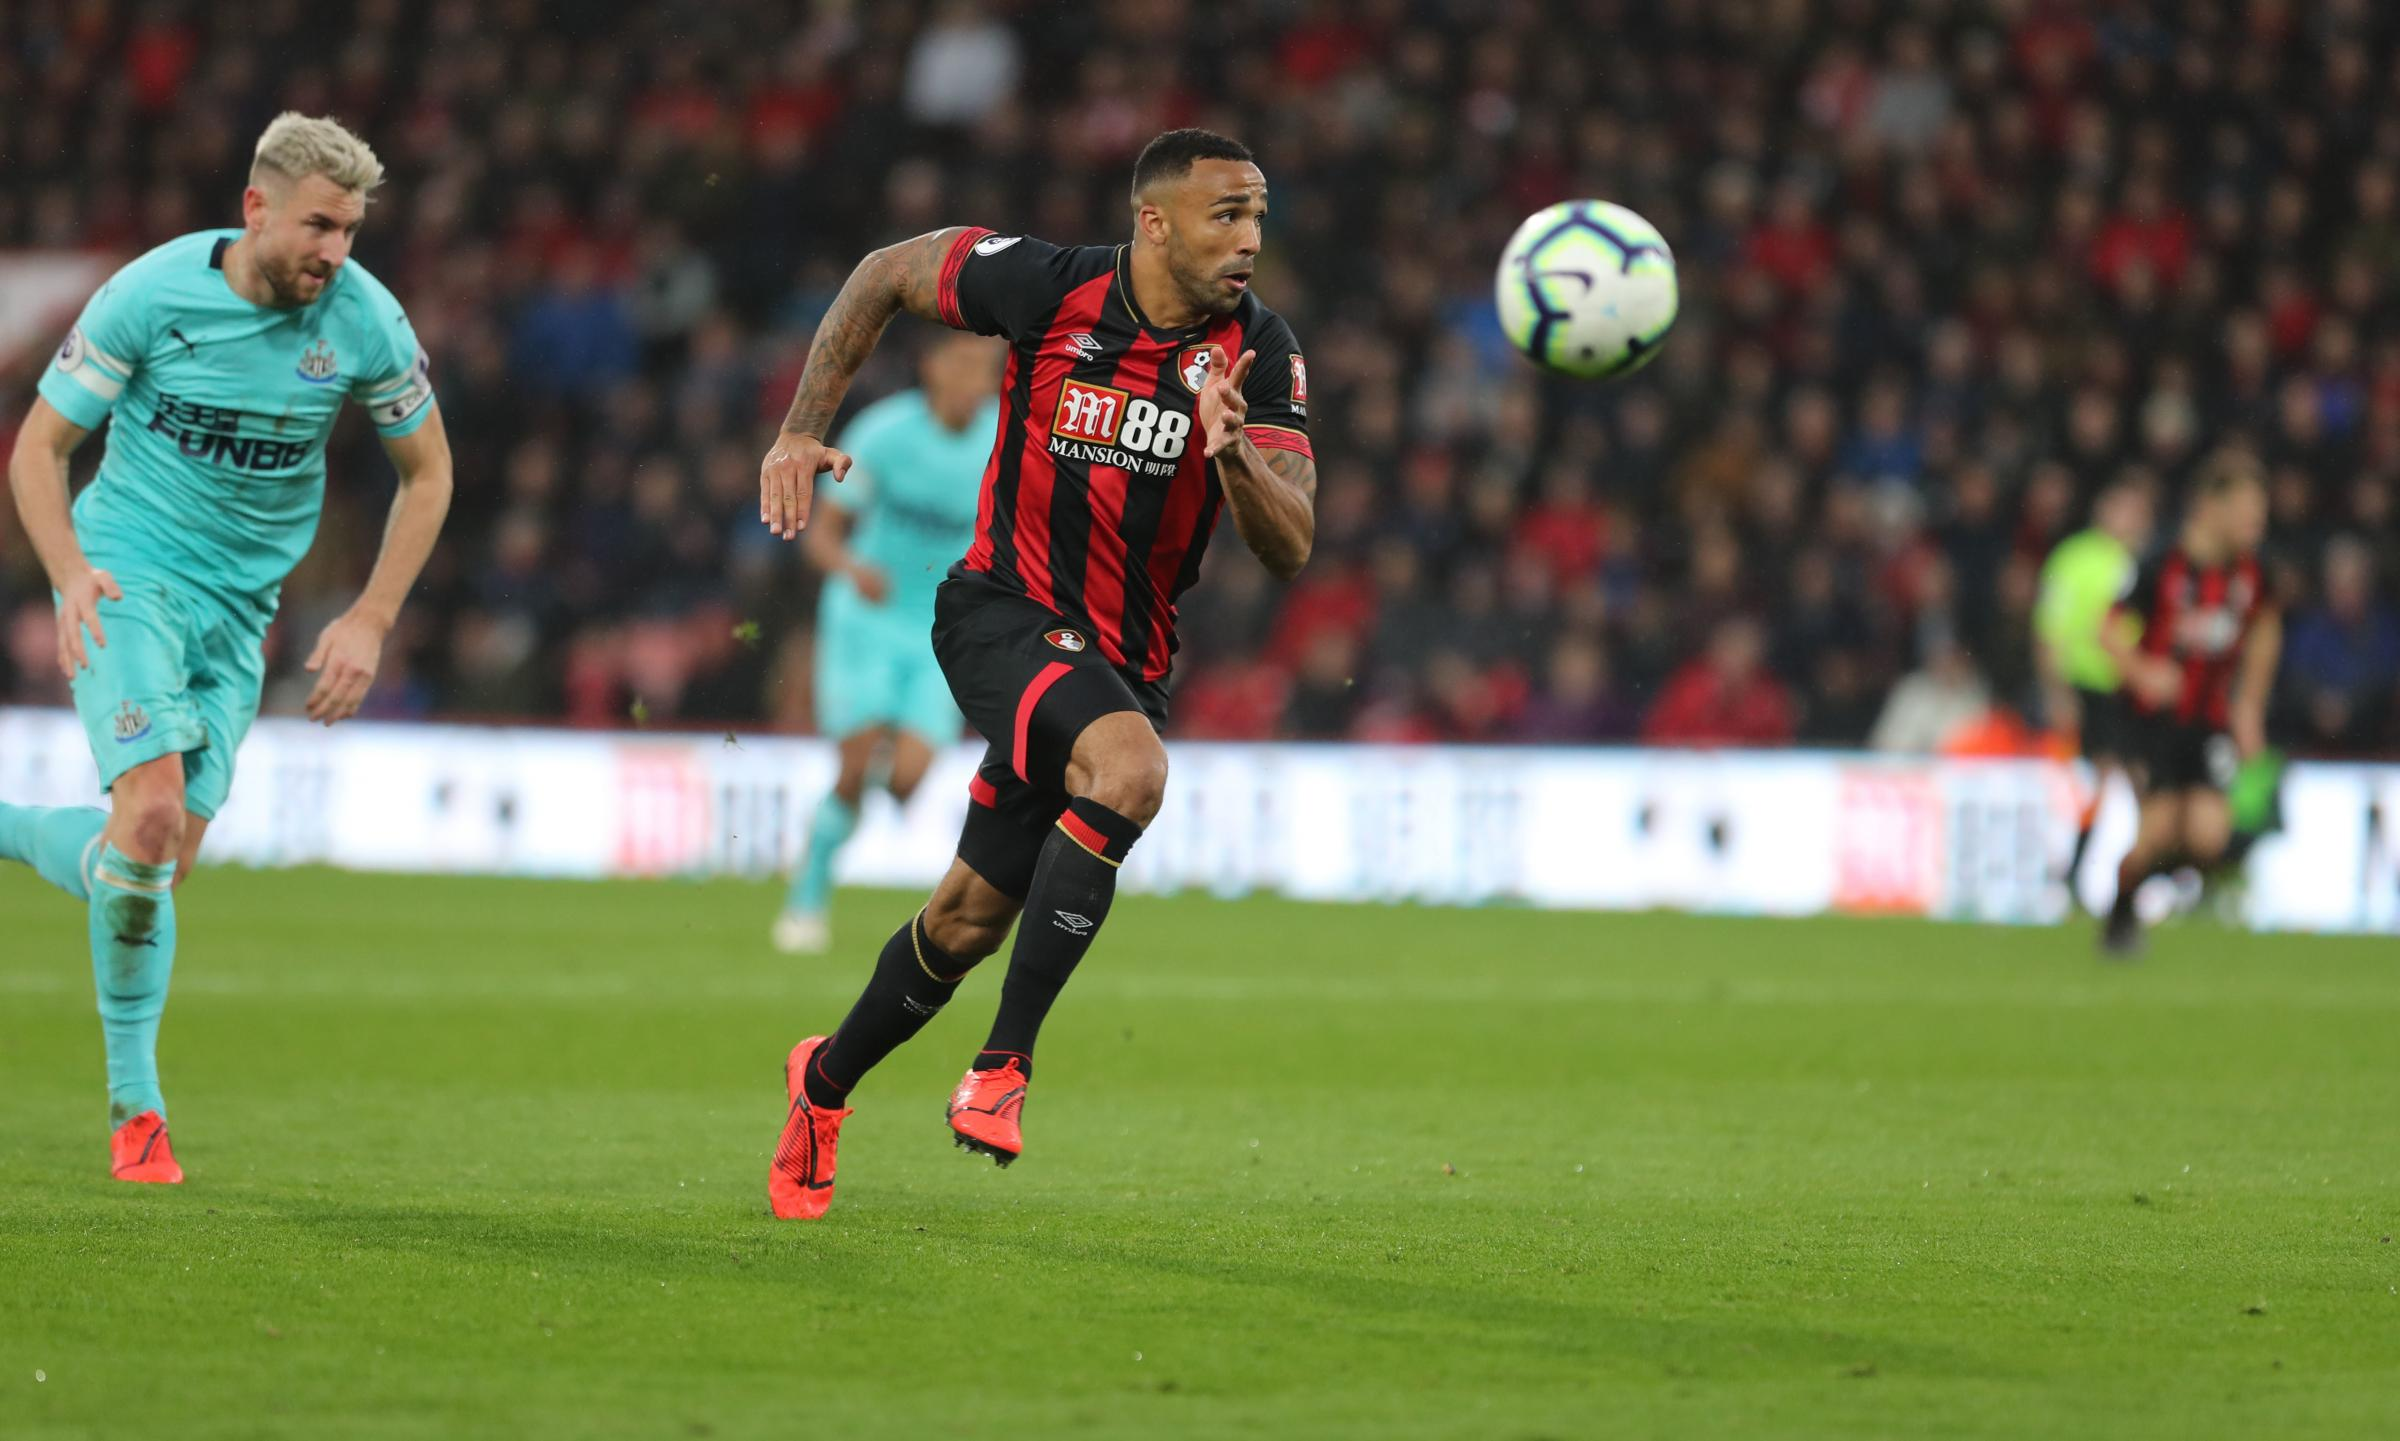 Everton plan £35million swoop for AFC Bournemouth ace Callum Wilson, claims report